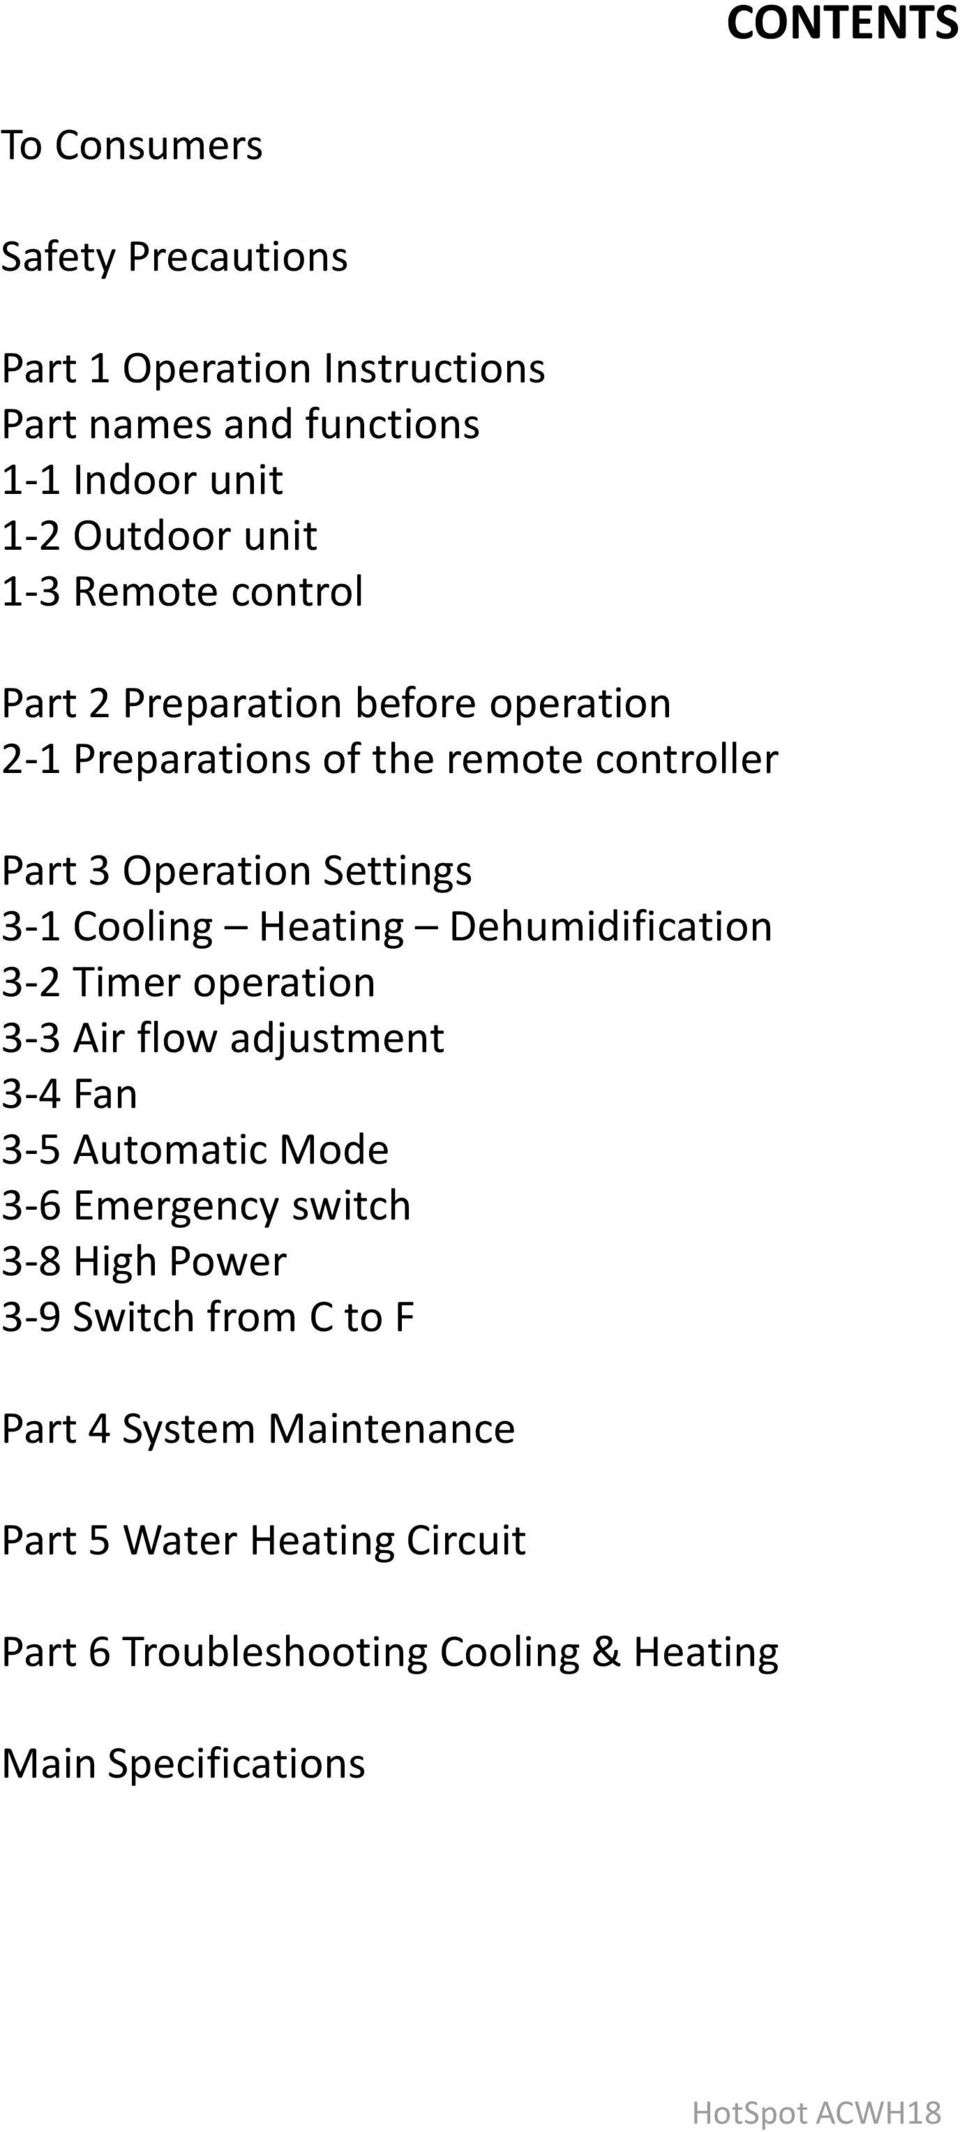 Heating Dehumidification 3-2 Timer operation 3-3 Air flow adjustment 3-4 Fan 3-5 Automatic Mode 3-6 Emergency switch 3-8 High Power